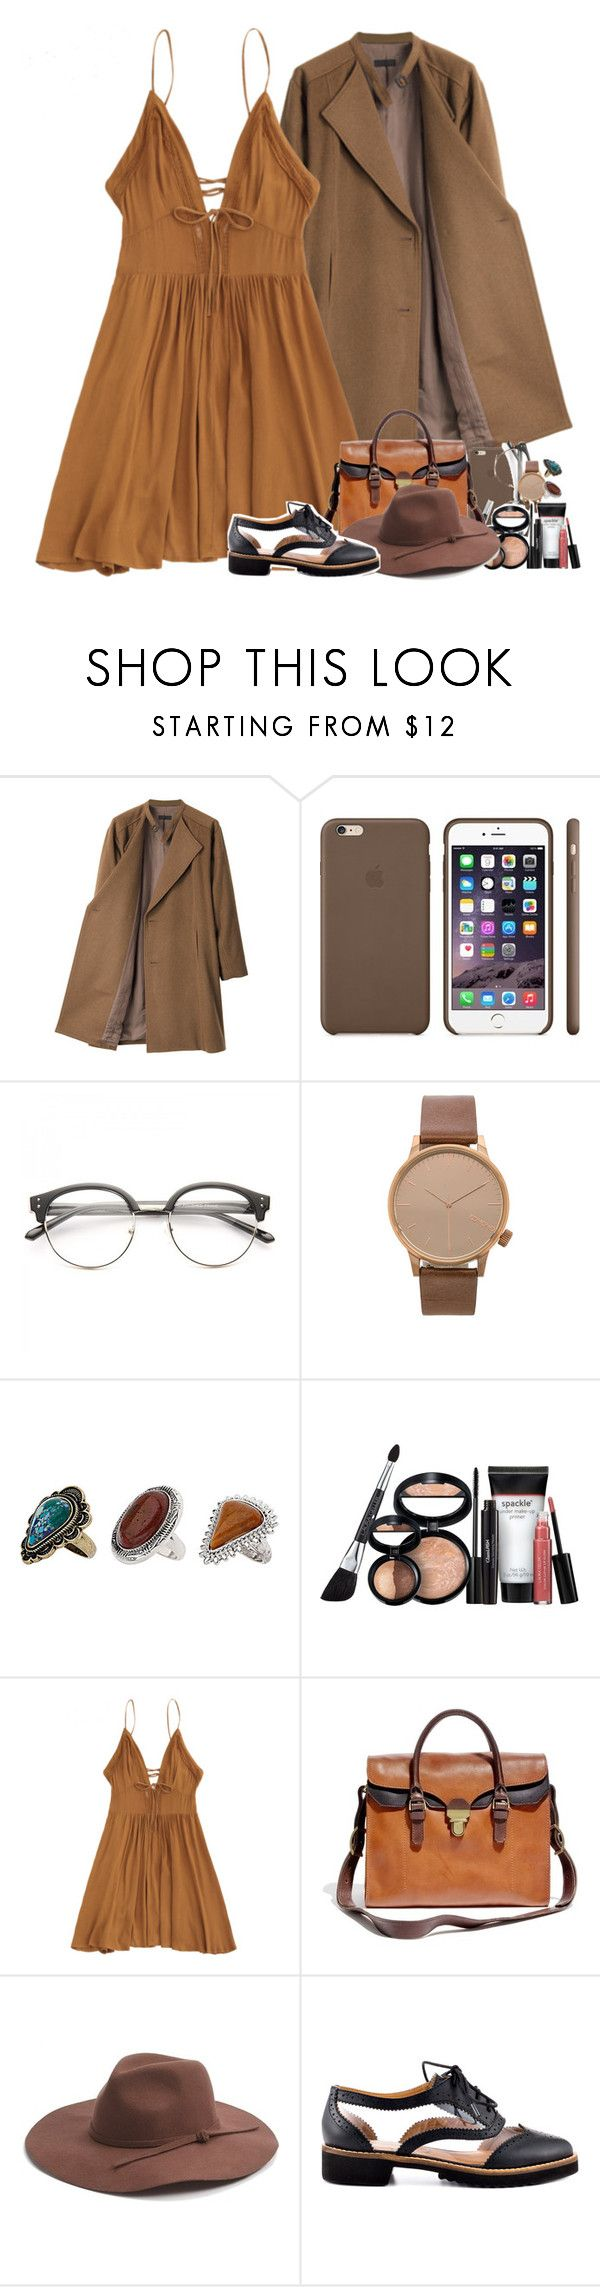 """knocking on your heart."" by sticthen on Polyvore featuring G.V.G.V., Black Apple, Komono, Topshop, Laura Geller, Madewell, Phase 3, Kelsi Dagger Brooklyn, brown and fanfiction"